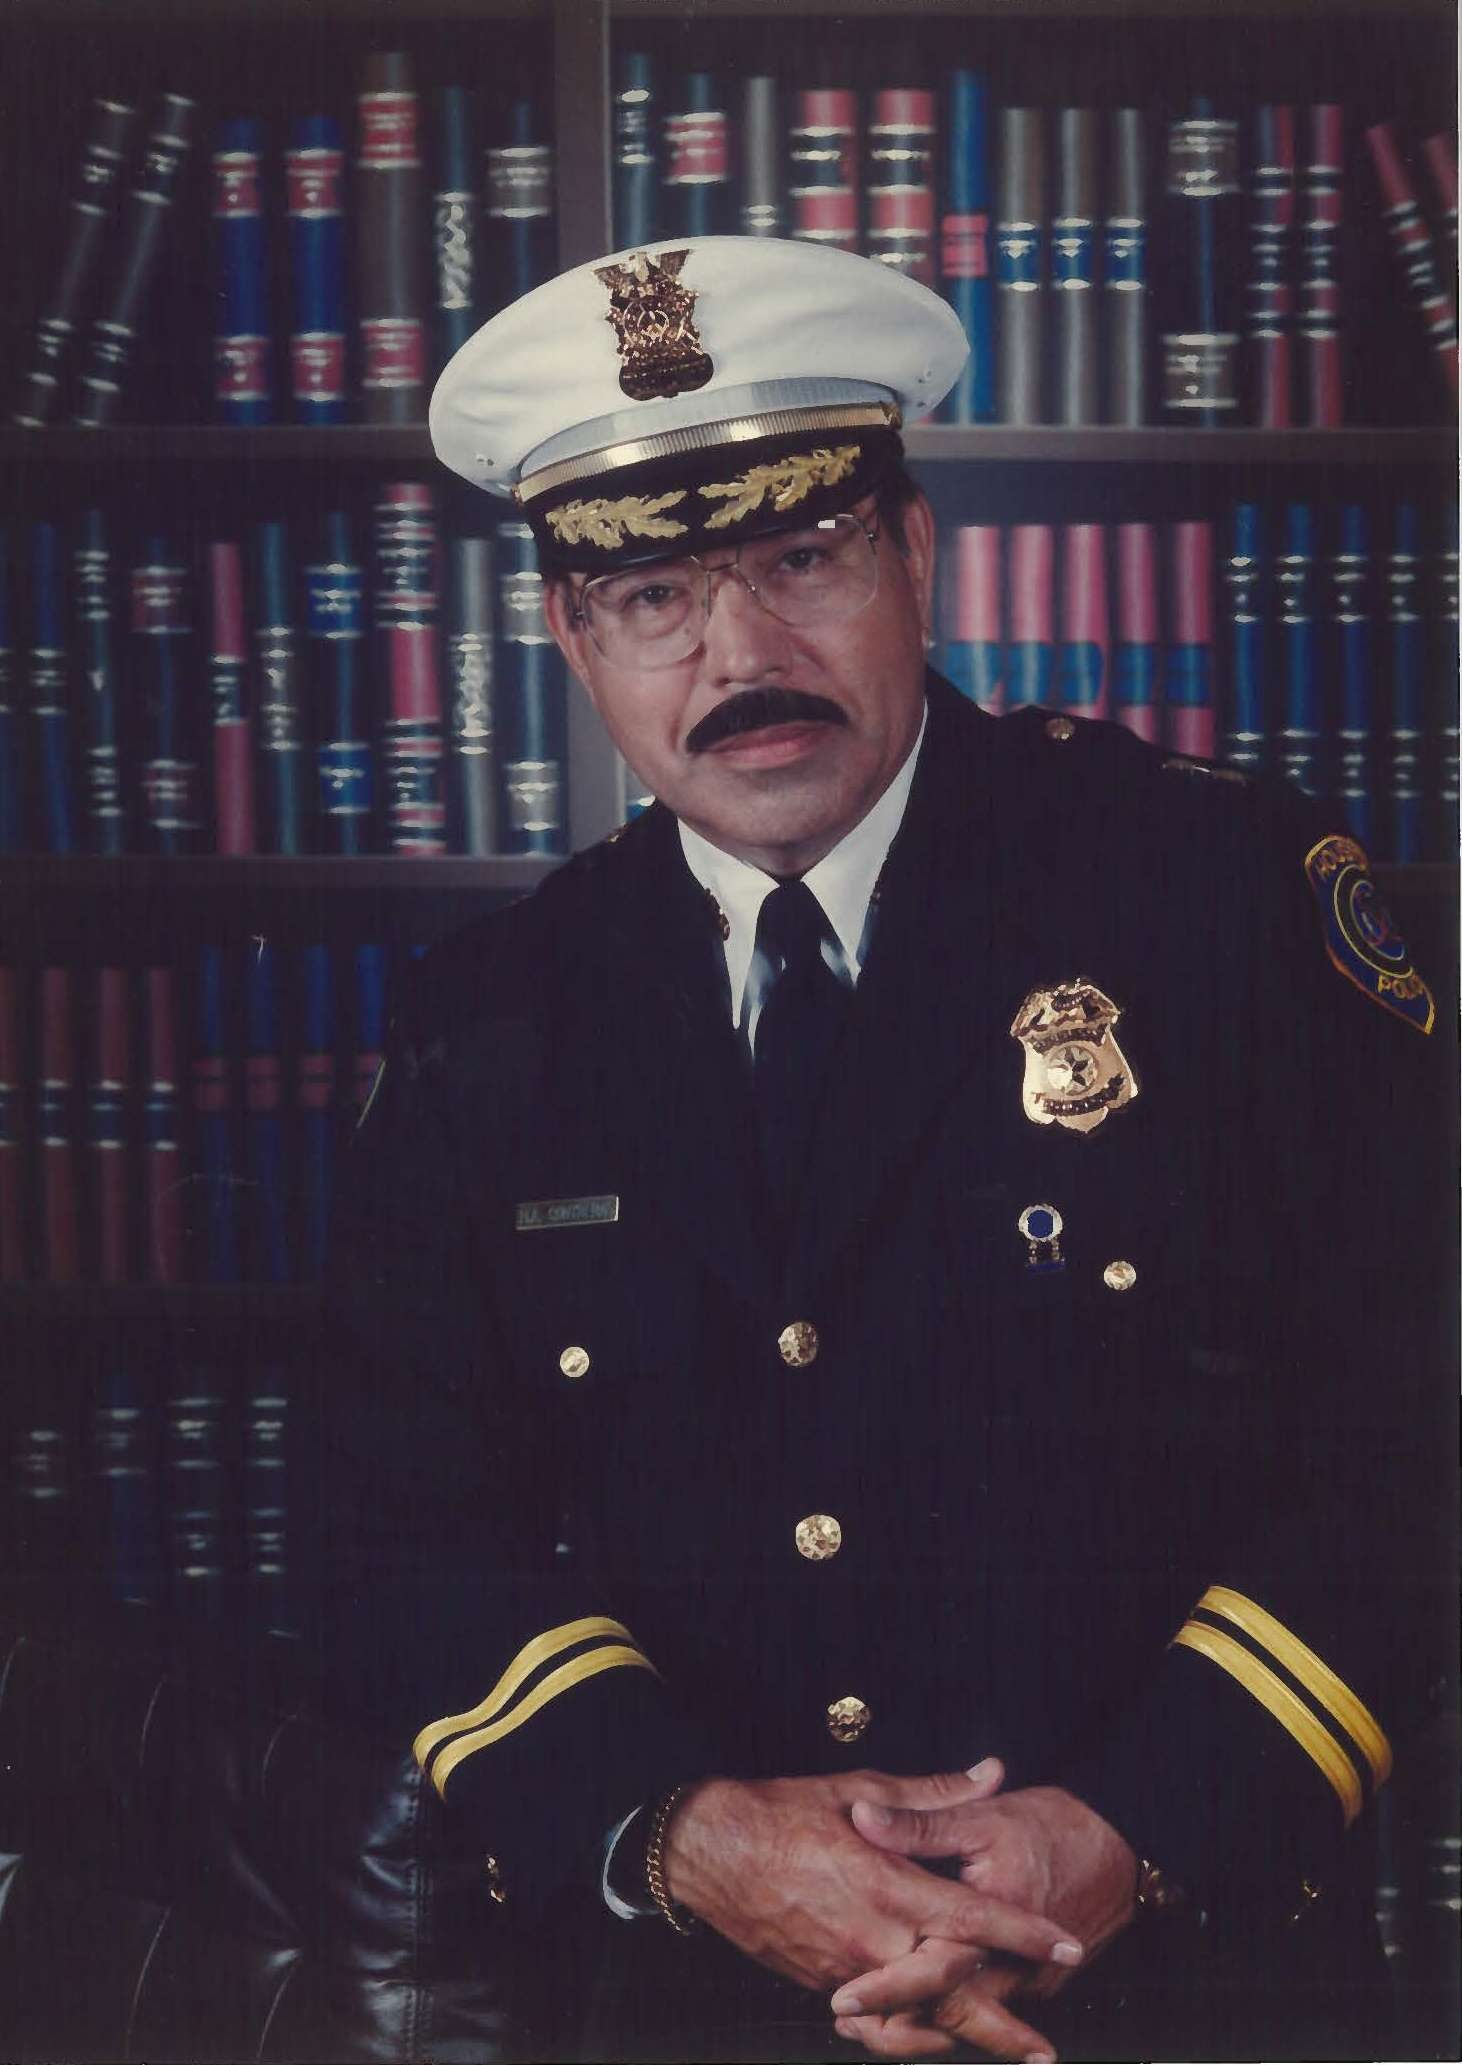 Former Houston Police Department Assistant Chief Art Contreras has been recognized by the City, which will rename the Northeast Police Station after him.